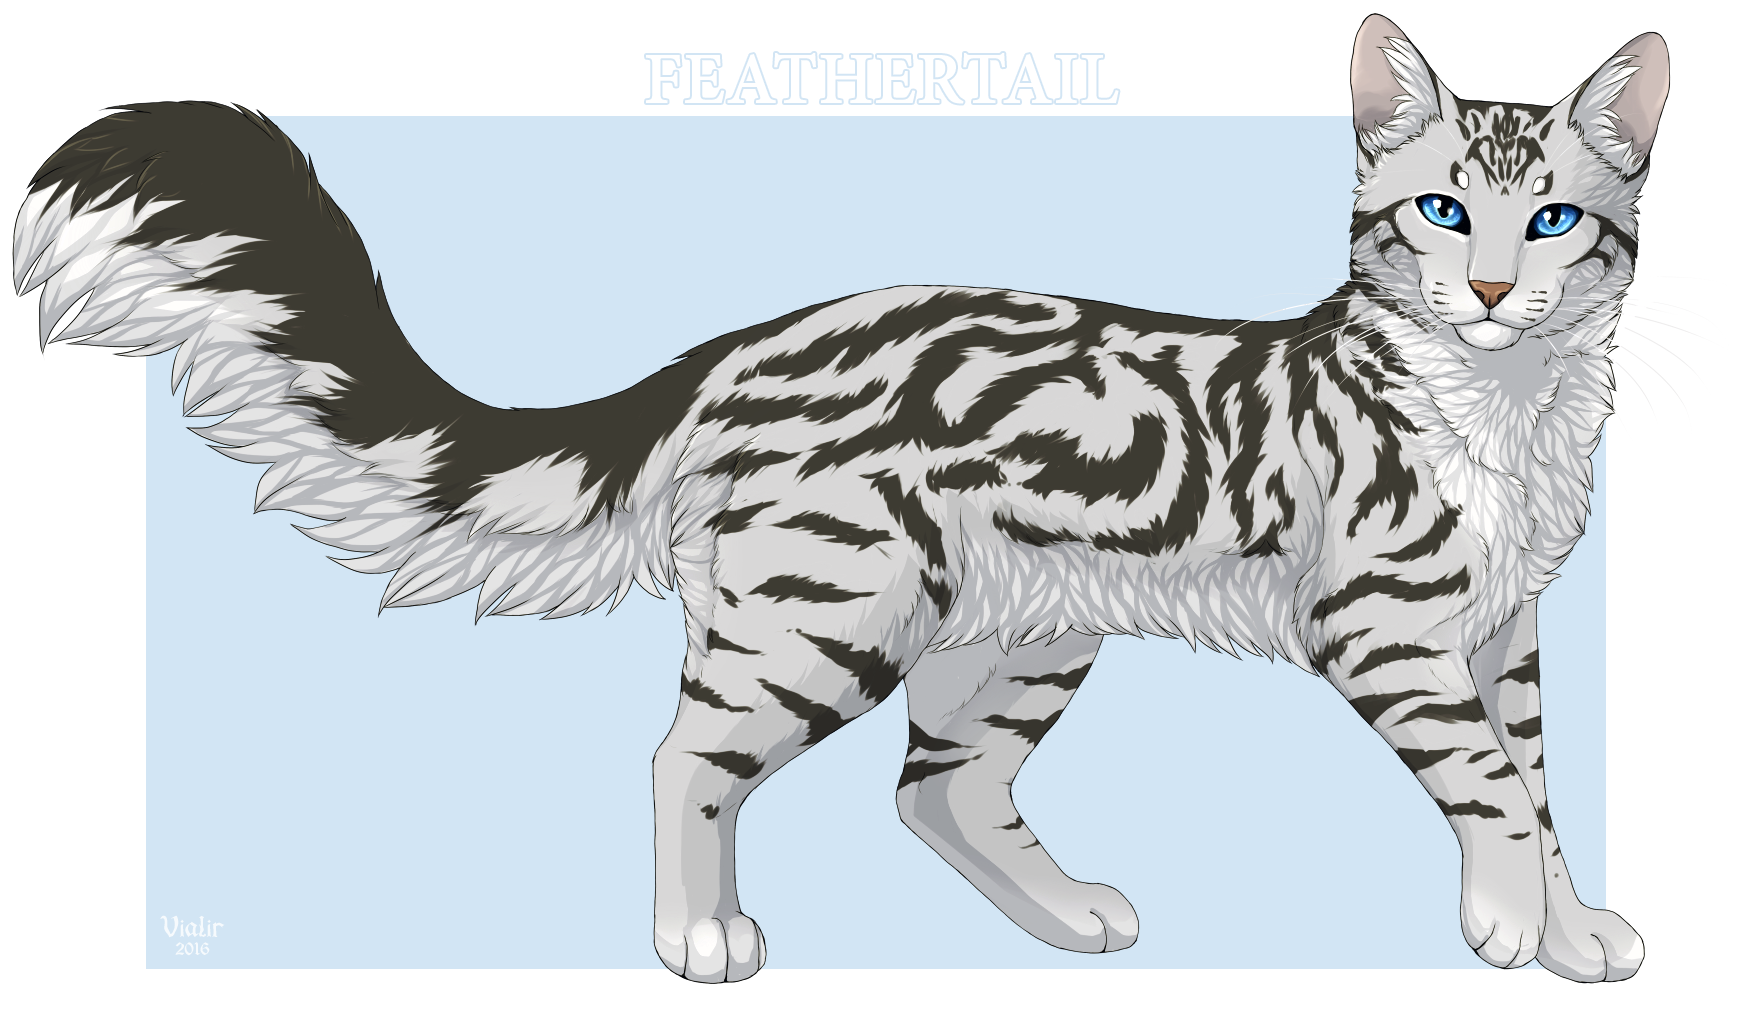 Feathertail by Vialir on DeviantArt